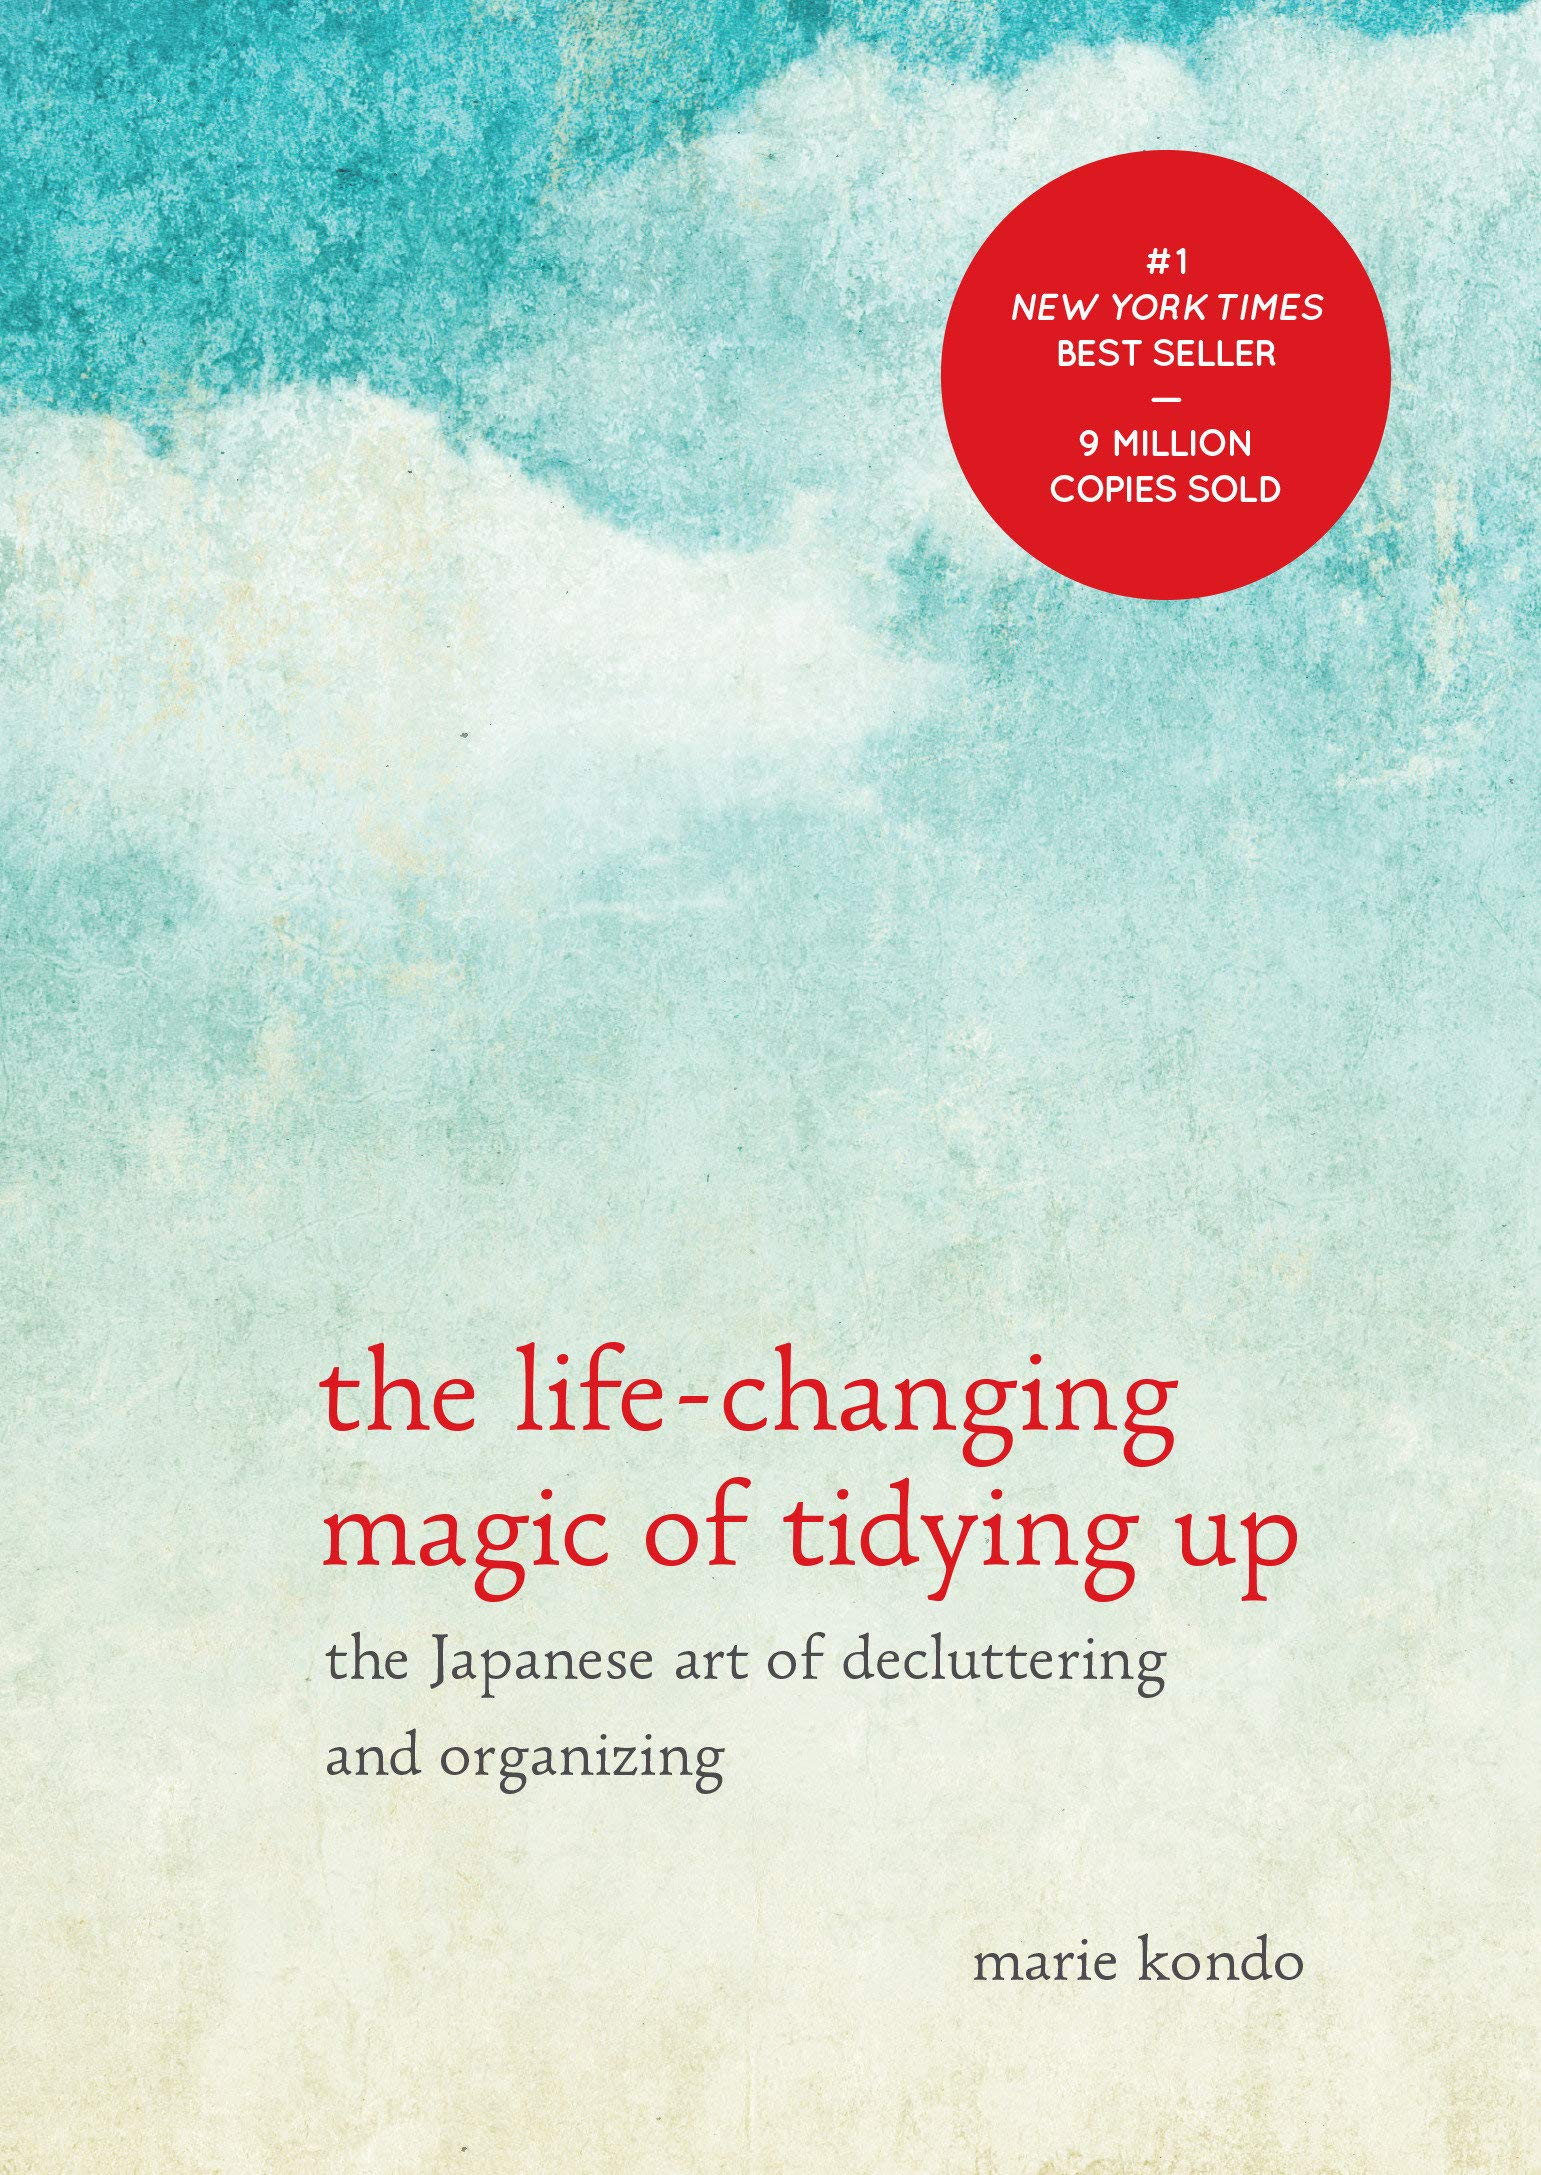 "The Life-Changing Magic of Tidying Up - by Marie KondoDespite constant efforts to declutter your home, do papers still accumulate like snowdrifts and clothes pile up like a tangled mess of noodles?Japanese cleaning consultant Marie Kondo takes tidying to a whole new level, promising that if you properly simplify and organize your home once, you'll never have to do it again. Most methods advocate a room-by-room or little-by-little approach, which doom you to pick away at your piles of stuff forever. The KonMari Method, with its revolutionary category-by-category system, leads to lasting results. In fact, none of Kondo's clients have lapsed (and she still has a three-month waiting list). With detailed guidance for determining which items in your house ""spark joy"" (and which don't), this international bestseller featuring Tokyo's newest lifestyle phenomenon will help you clear your clutter and enjoy the unique magic of a tidy home—and the calm, motivated mindset it can inspire."